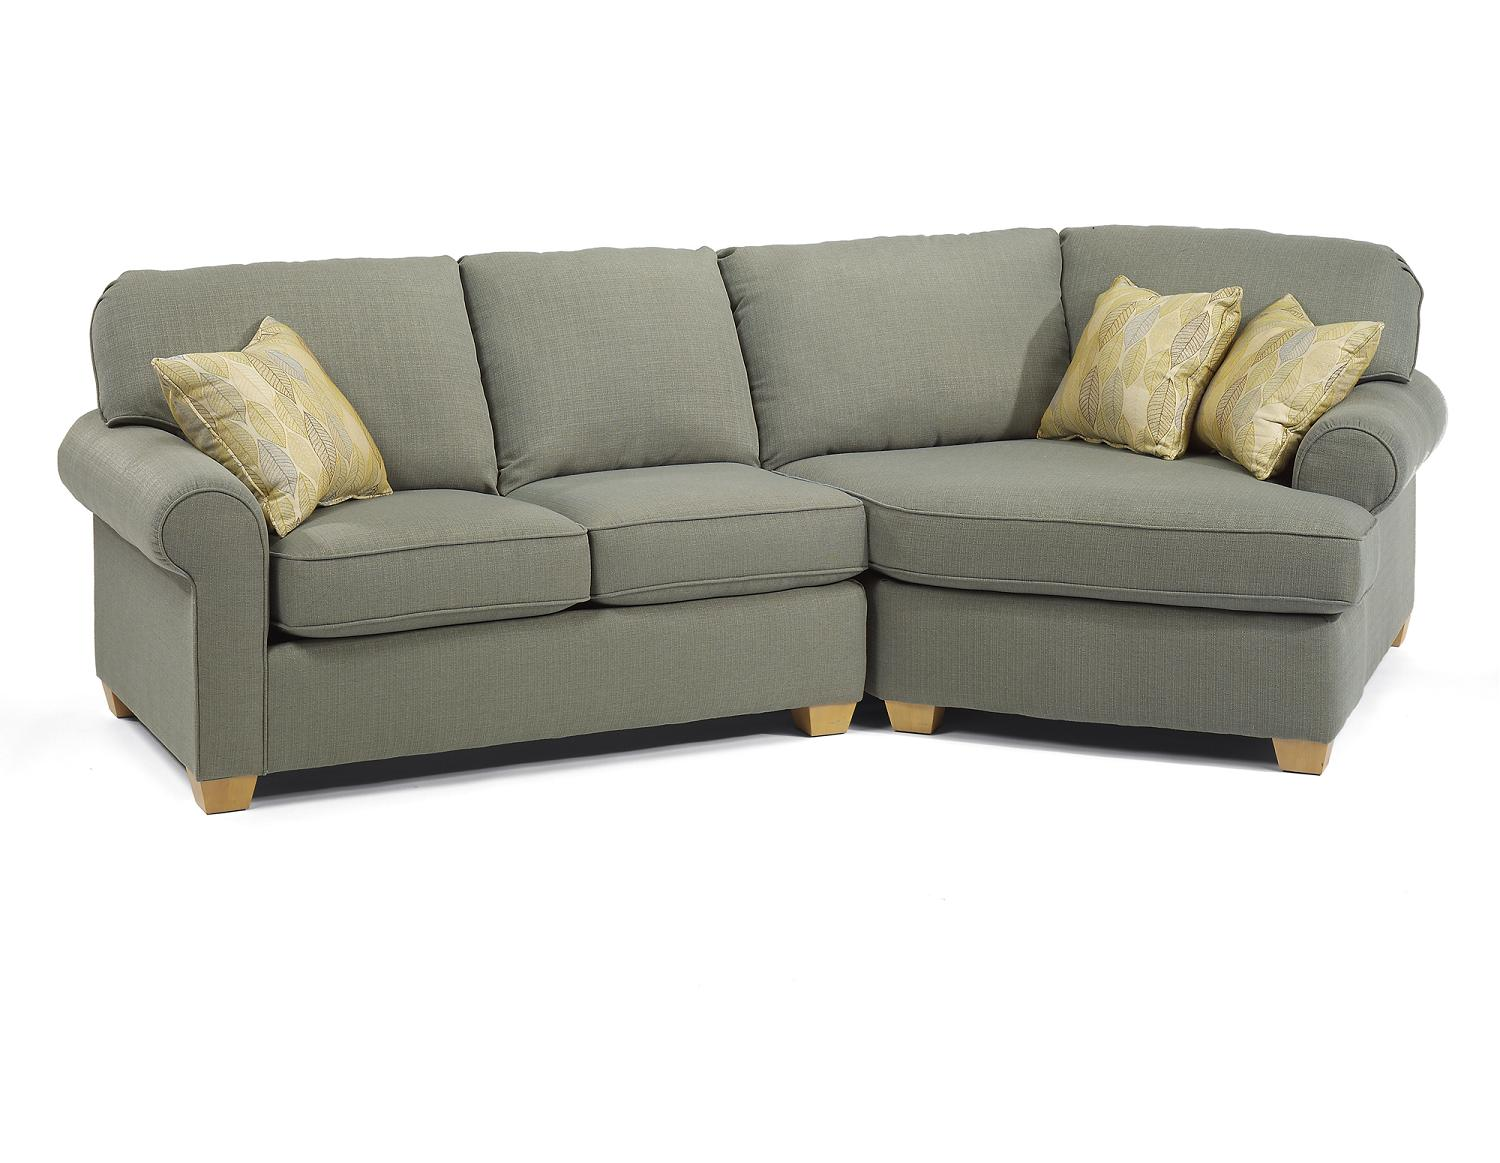 cheap sectional sofas under 100 couch sofa ideas interior design